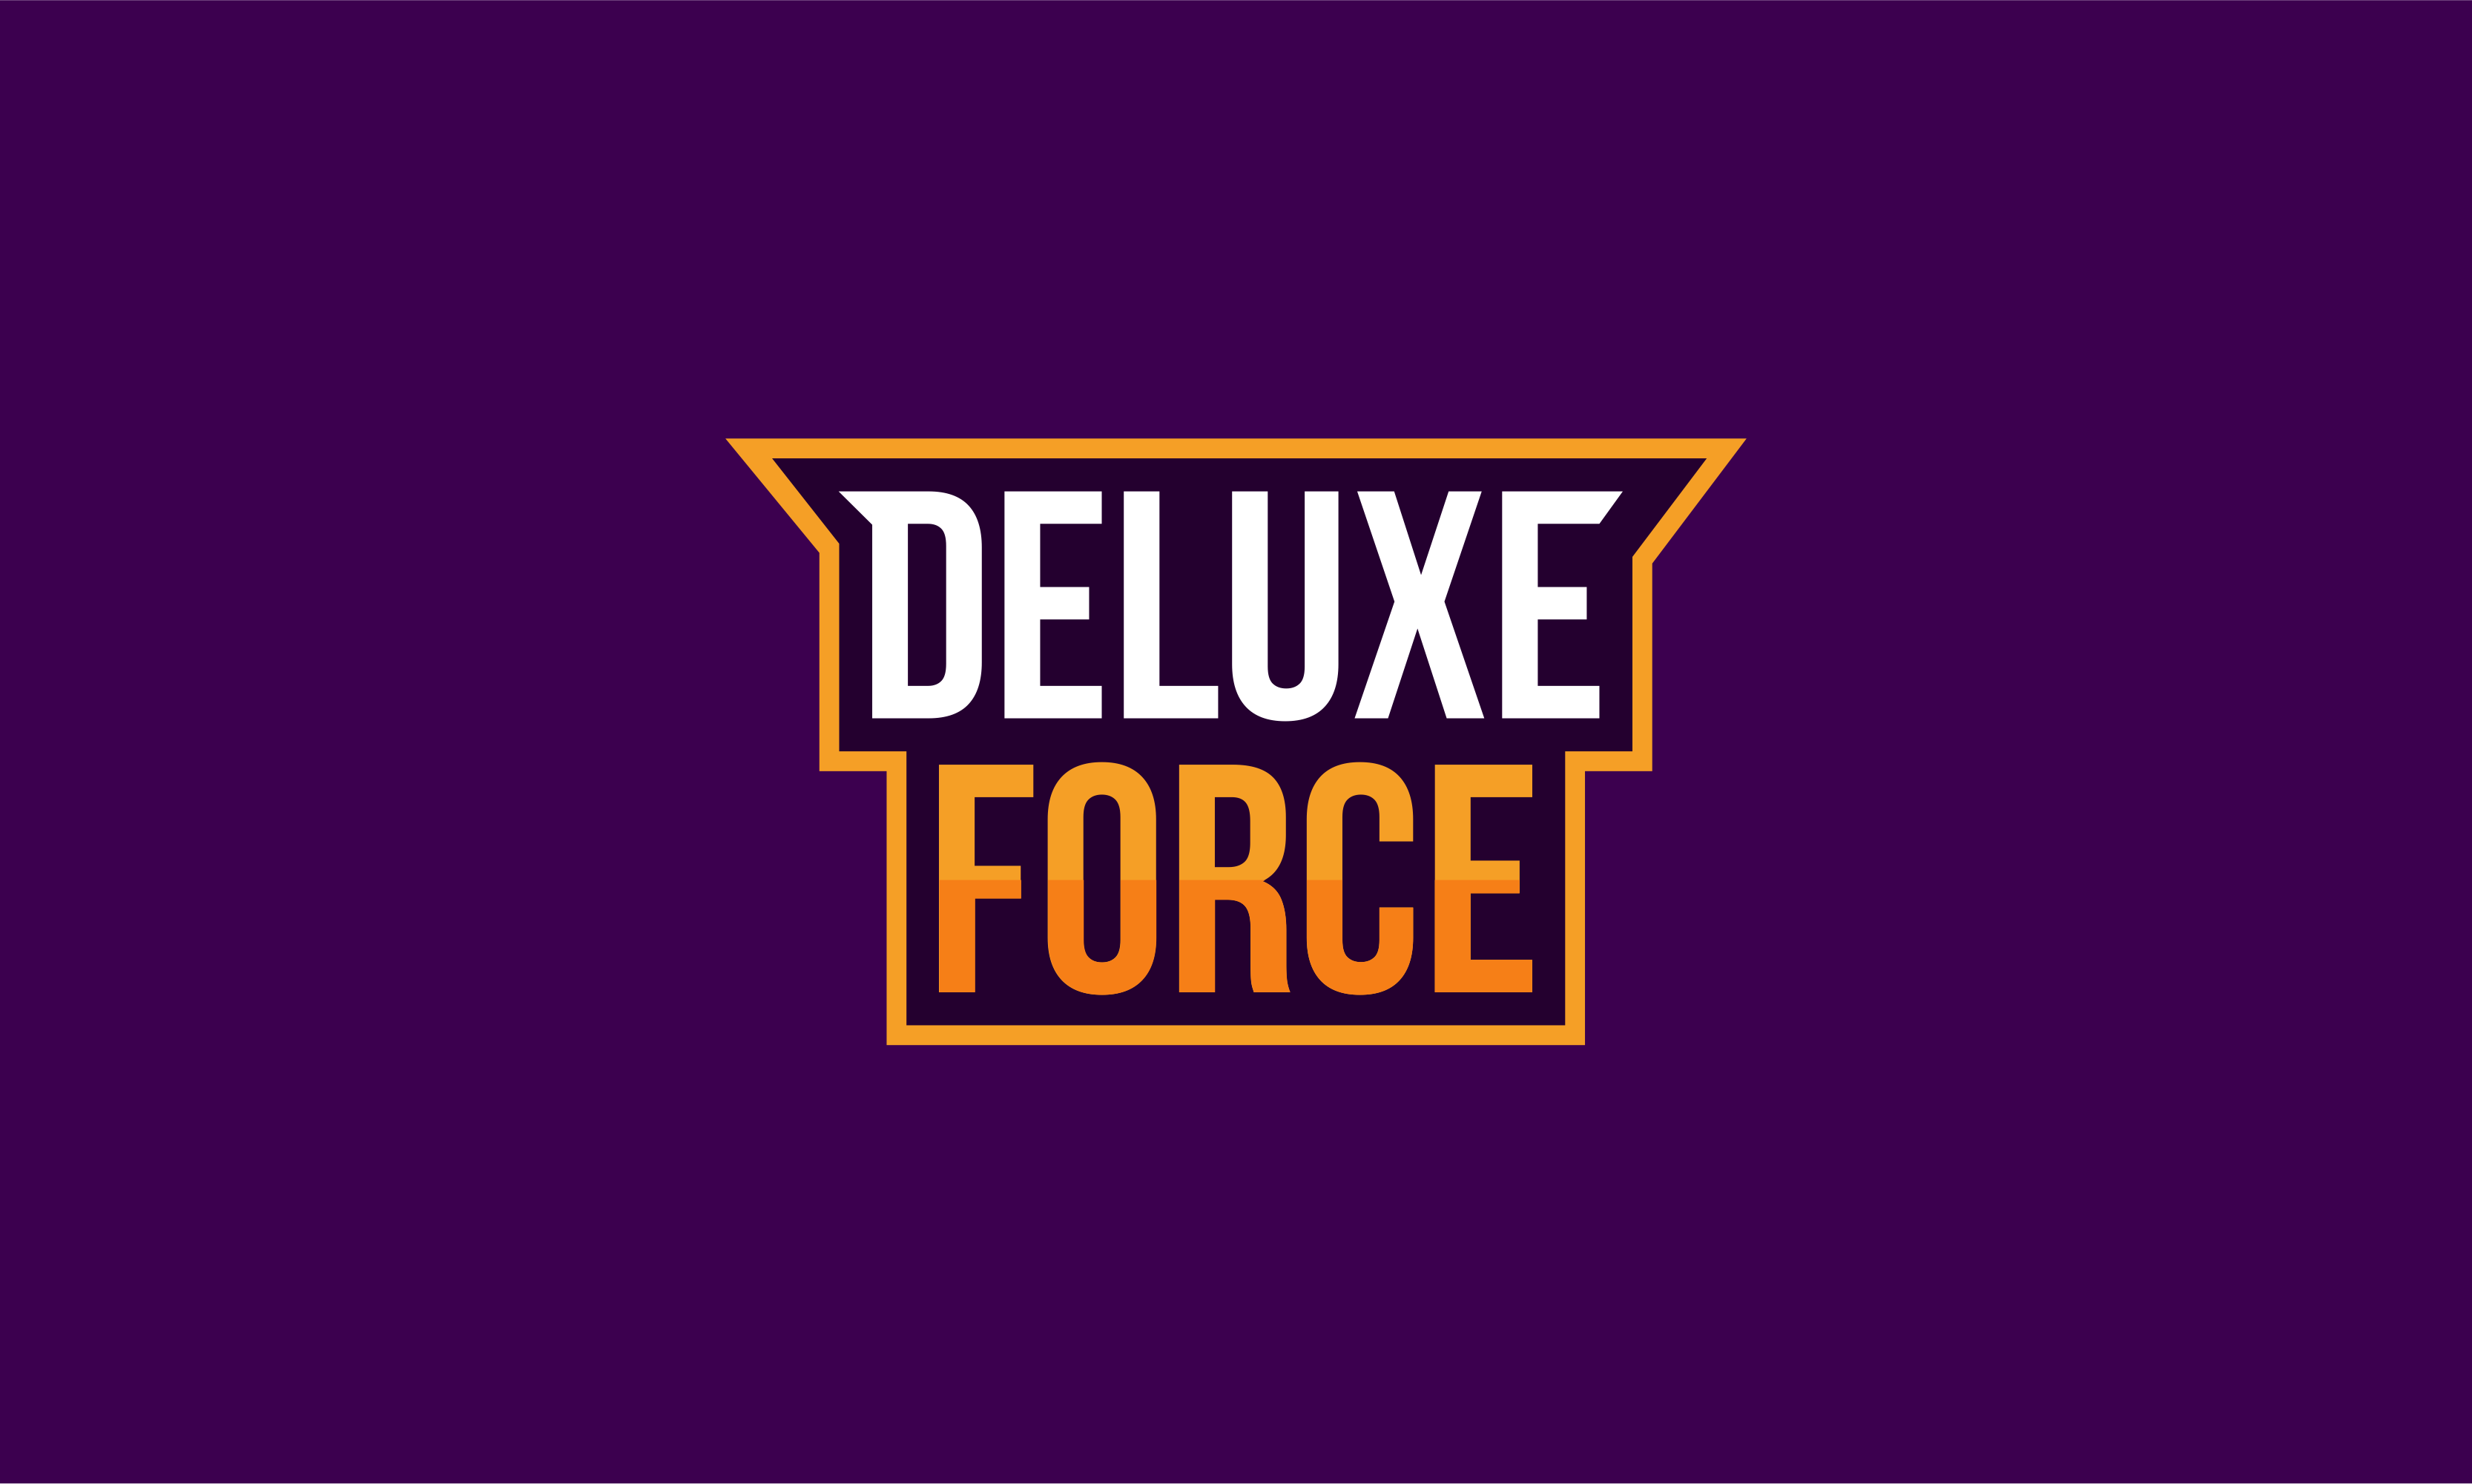 Deluxeforce